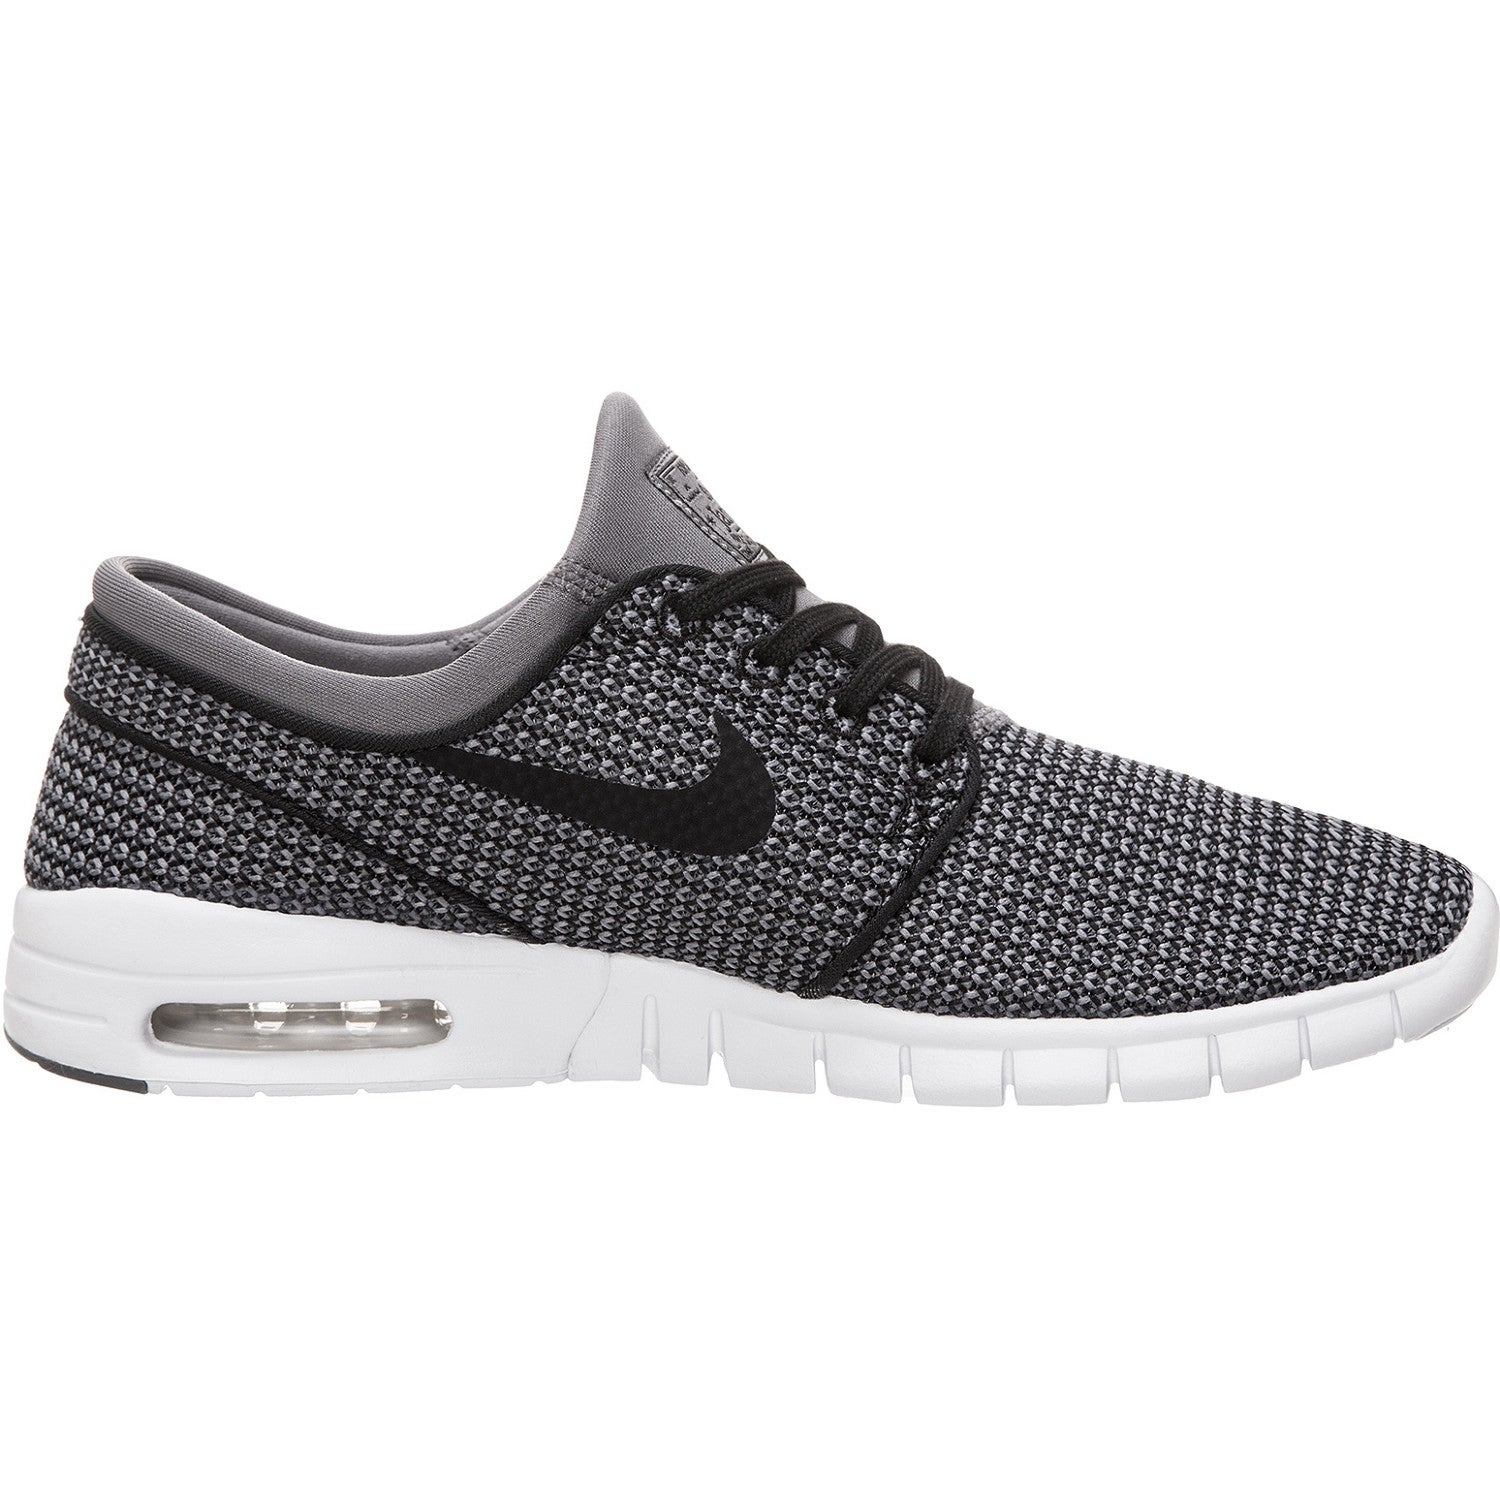 reputable site 41ee6 d64c4 ... good nike sb stefan janoski max mens shoe grey 7980b b8ecd